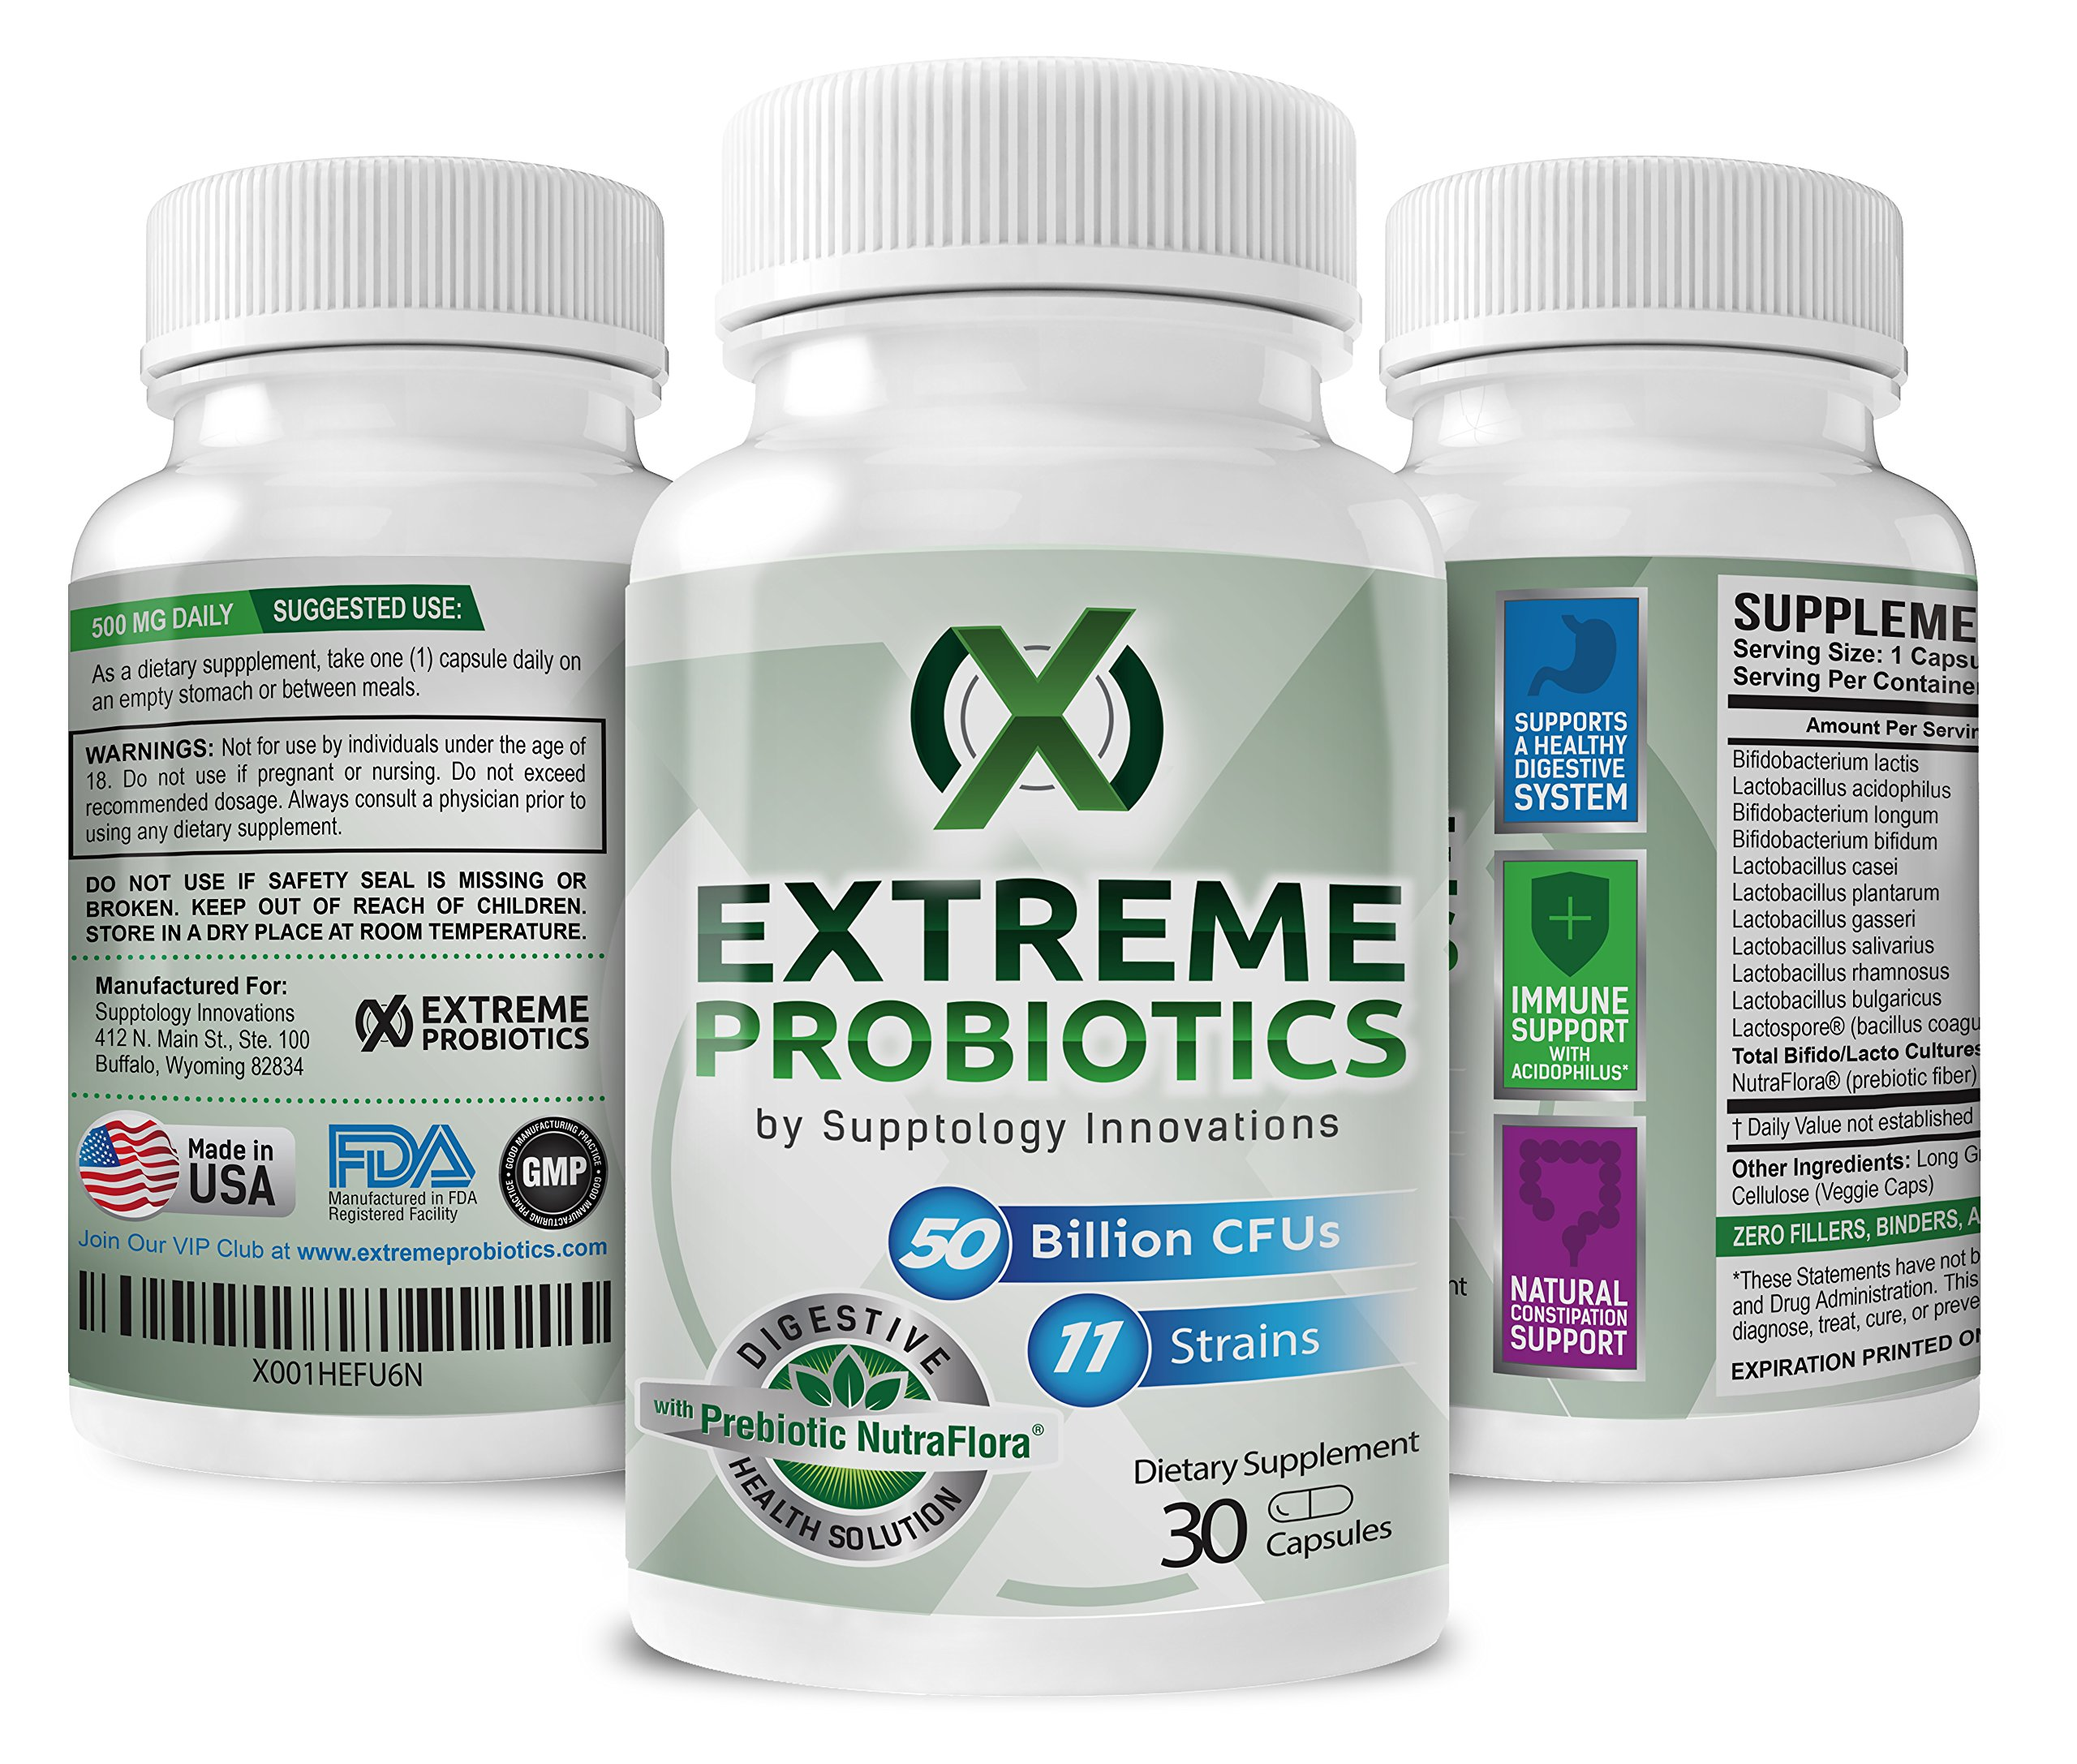 Probiotics by Extreme Probiotics w/ 50 Billion CFU & 11 Strains, Probiotic for Men and Women, High Potency Formula, Dr Rated Best, Vegan Capsules, w/ Nutraflora Prebiotic, One Per Day, 30 Capsules